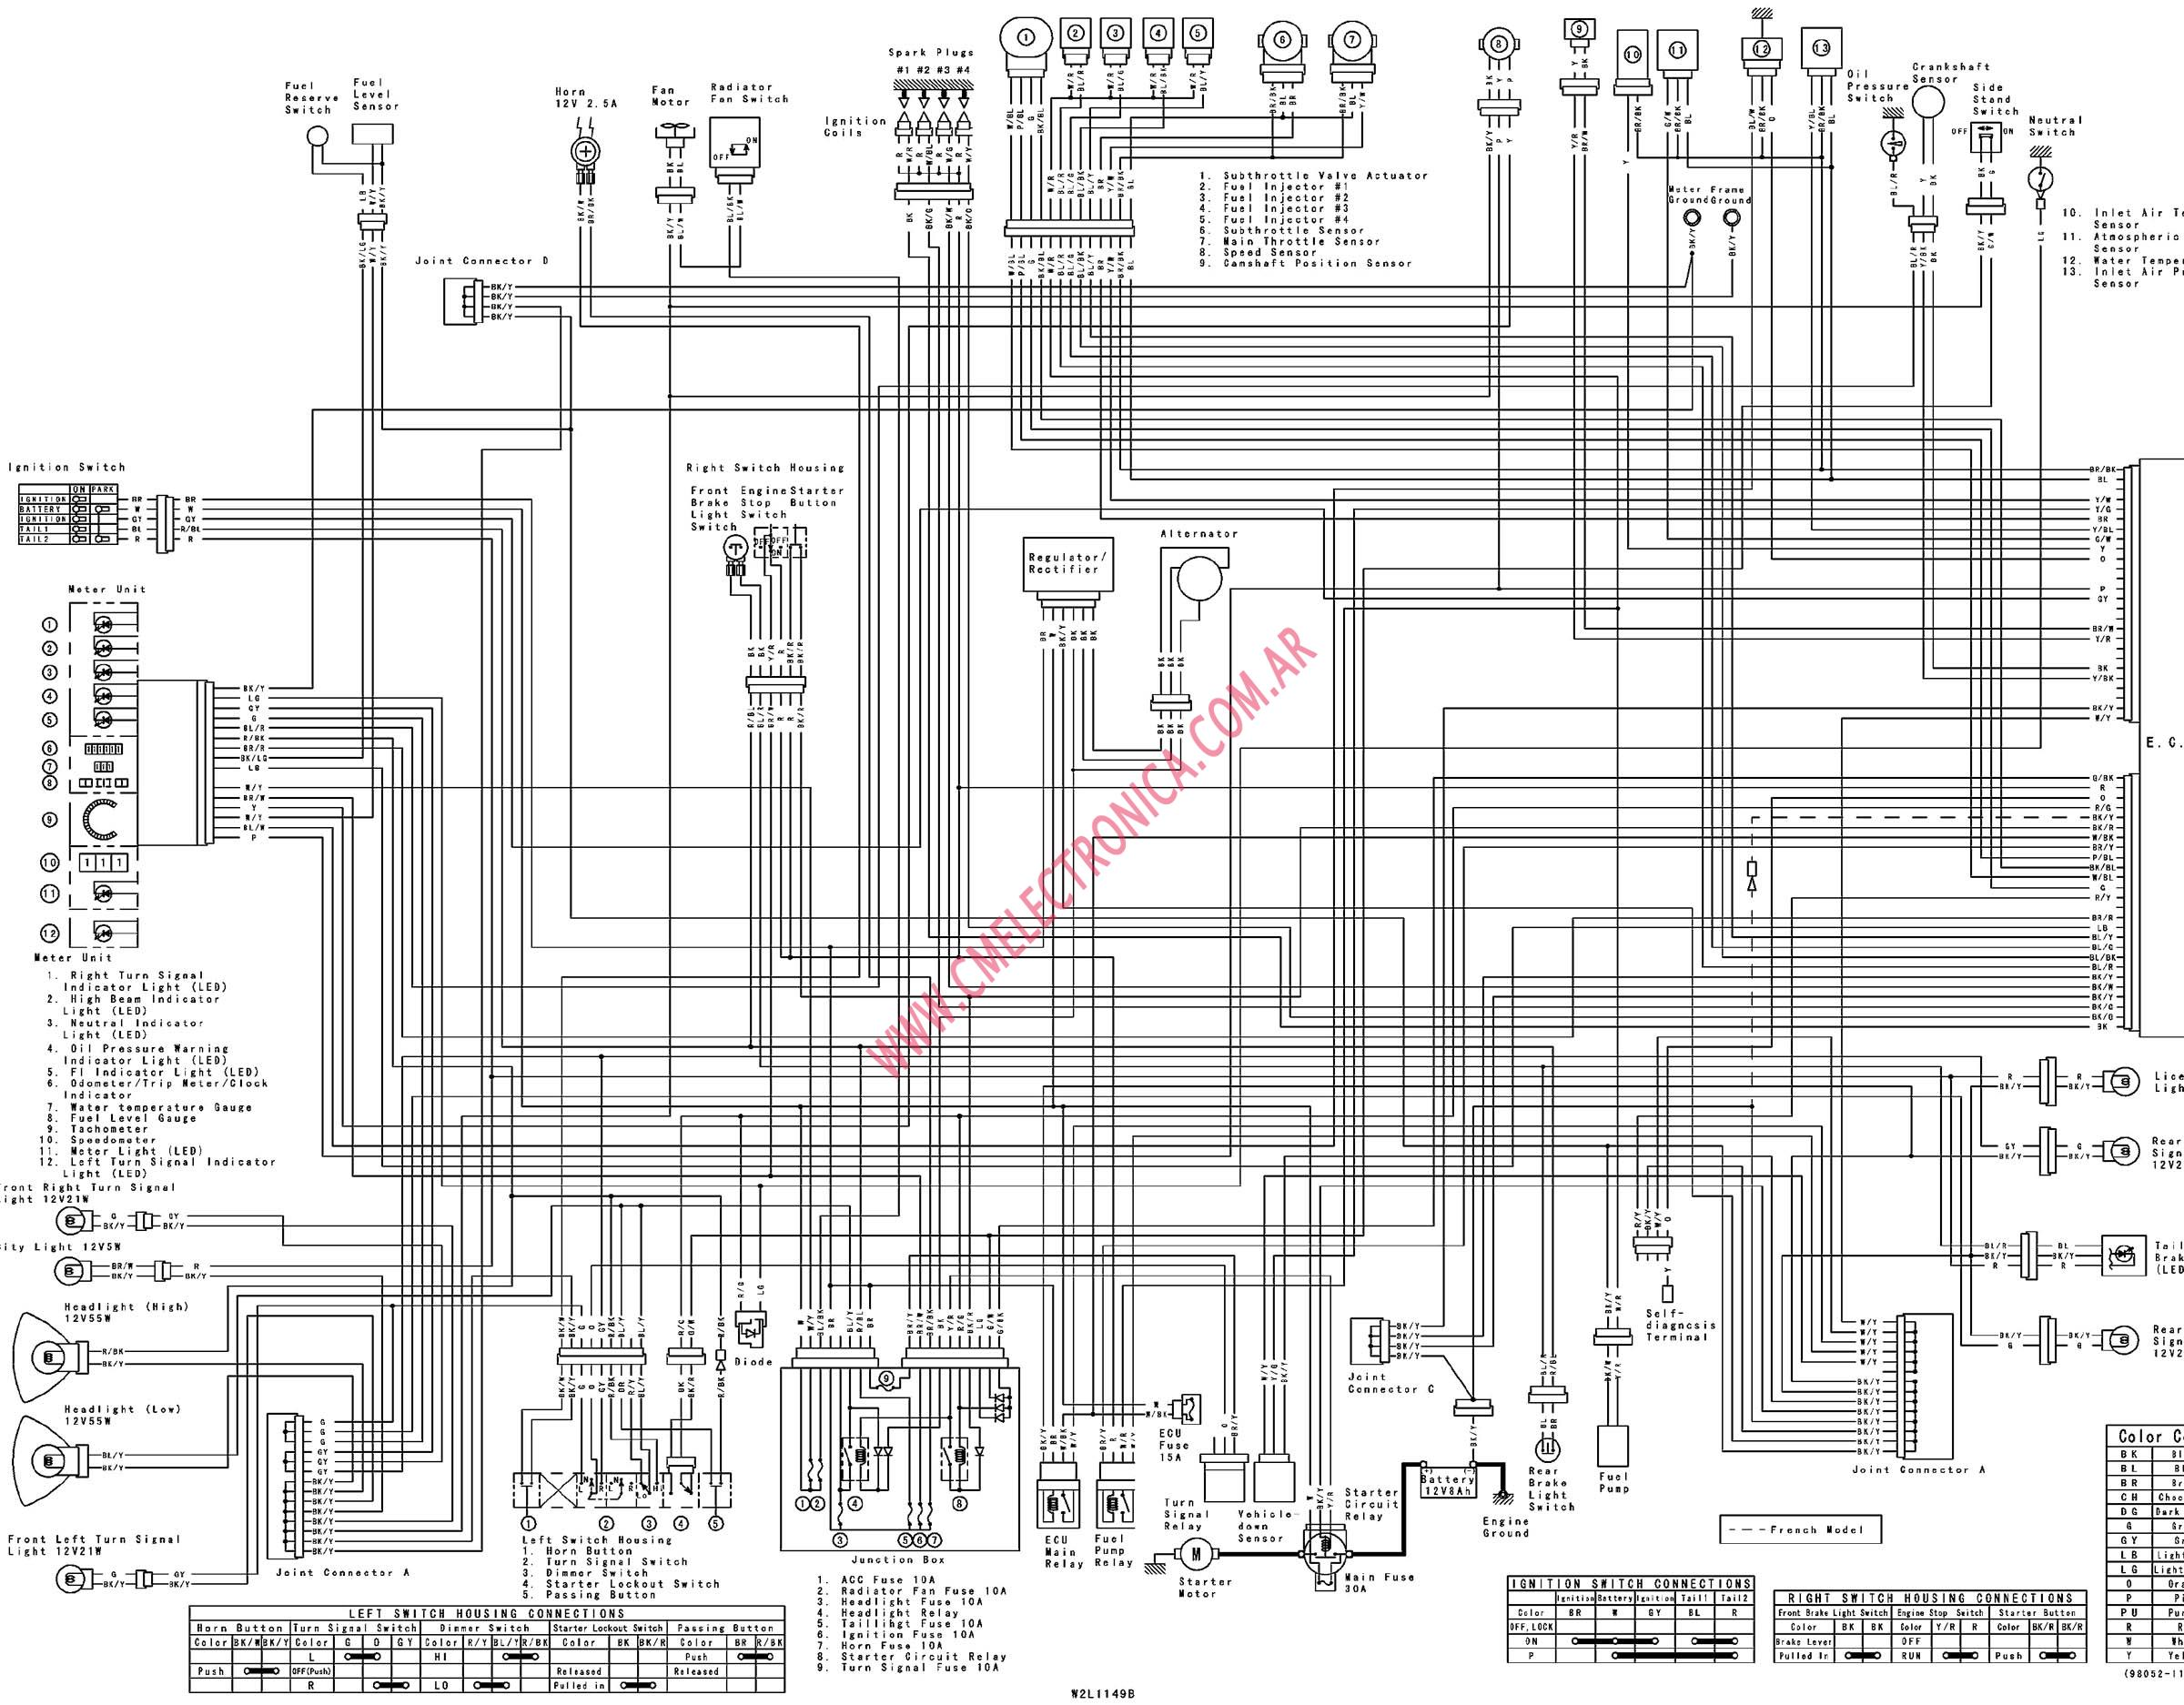 [DIAGRAM_3ER]  HV_3682] Wiring Diagram As Well 2003 Kawasaki Z1000 Wiring Diagram Further Schematic  Wiring | Zx1000 Wiring Diagram |  | Cajos Wigeg Mohammedshrine Librar Wiring 101